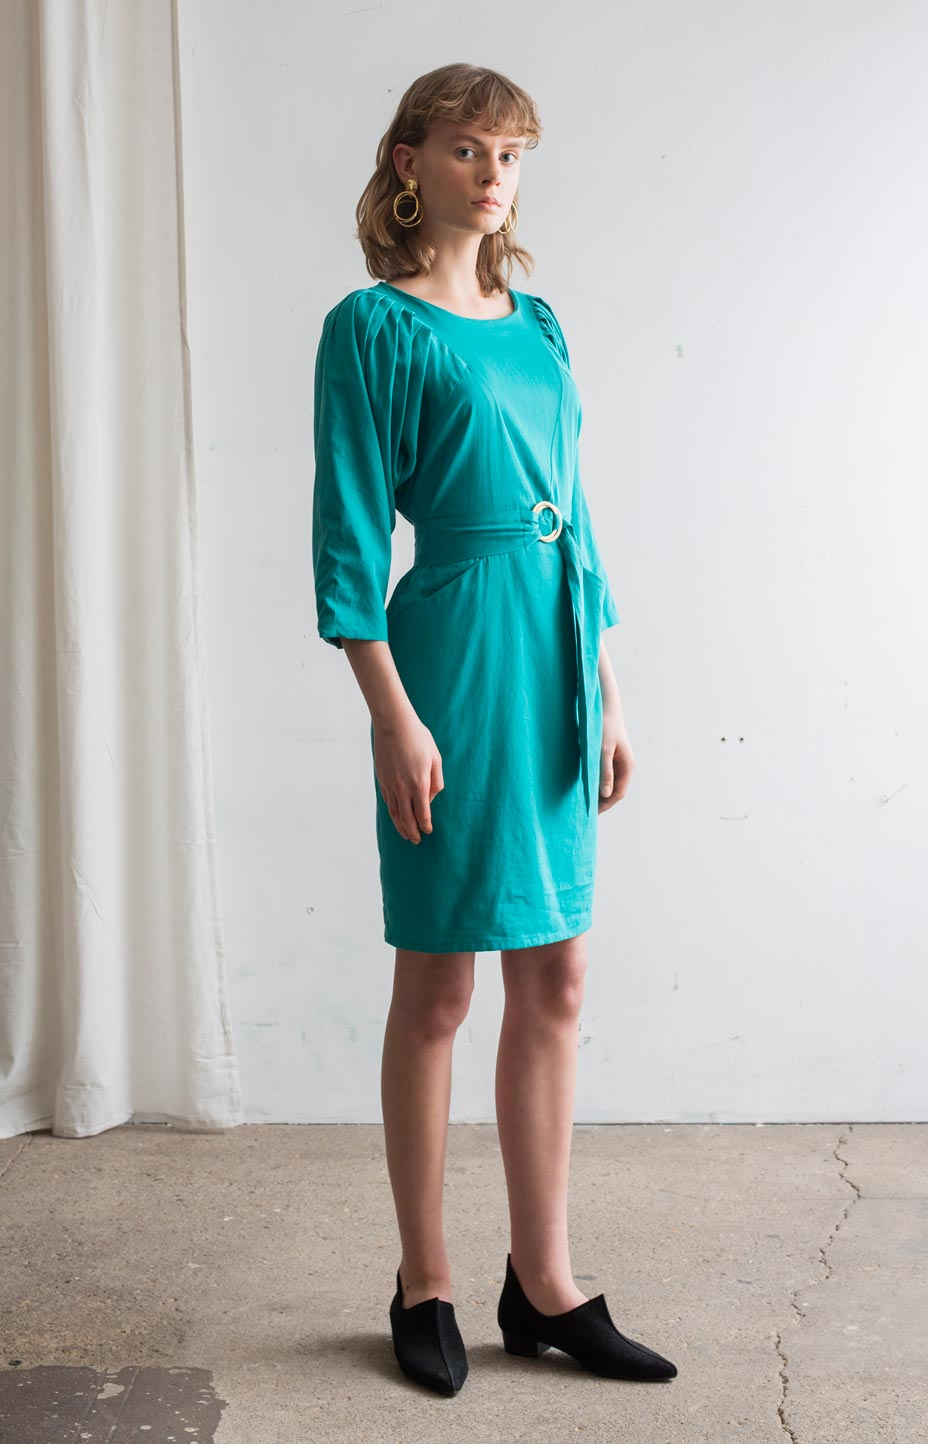 AW20 Feel dress parasailing blue - Dresses - TAUKO - TAUKODESIGN